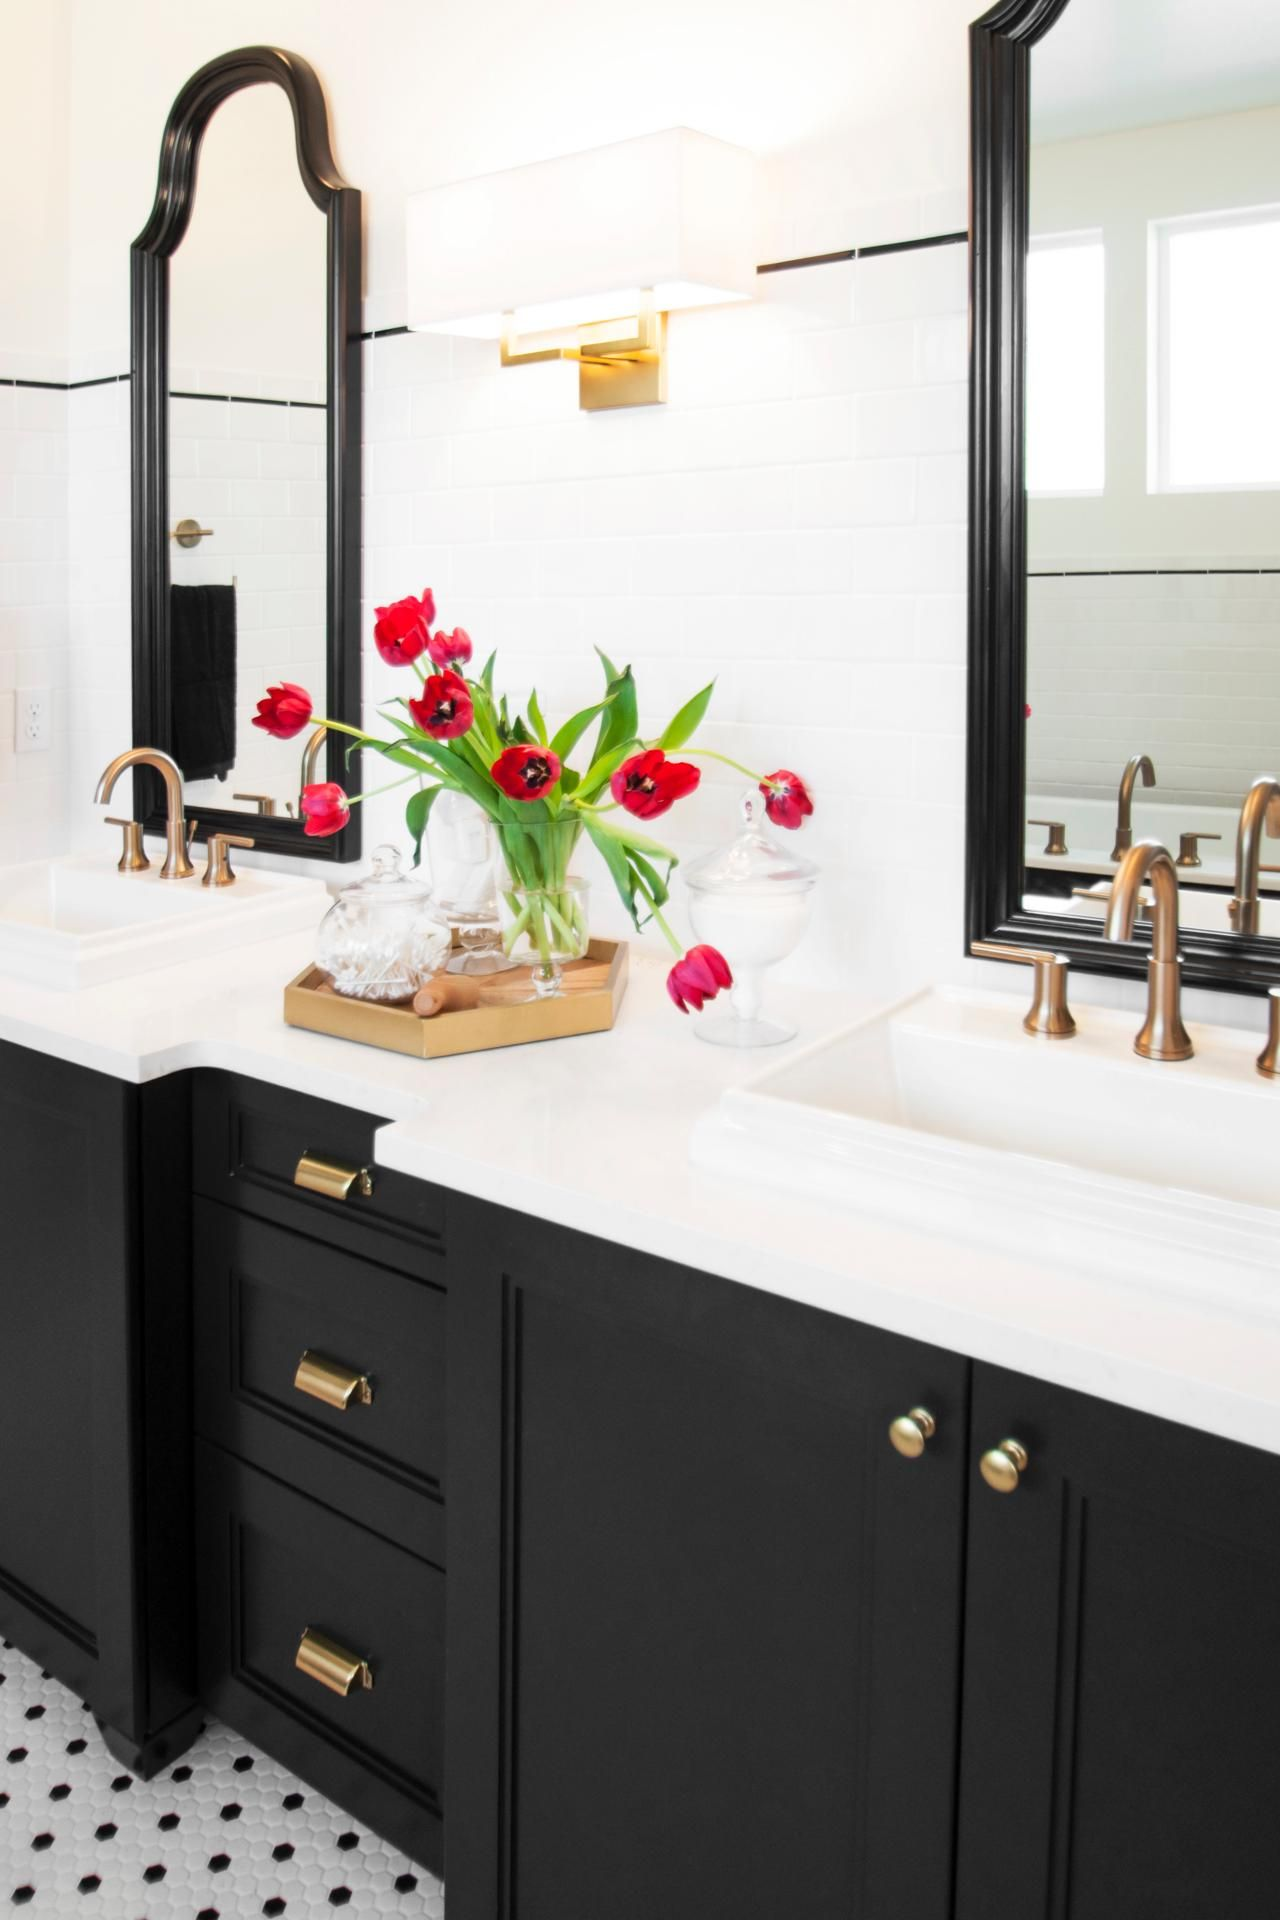 White Bathroom Vanity Ideas Style Suitors Why Black And White Tile Should Stay Married